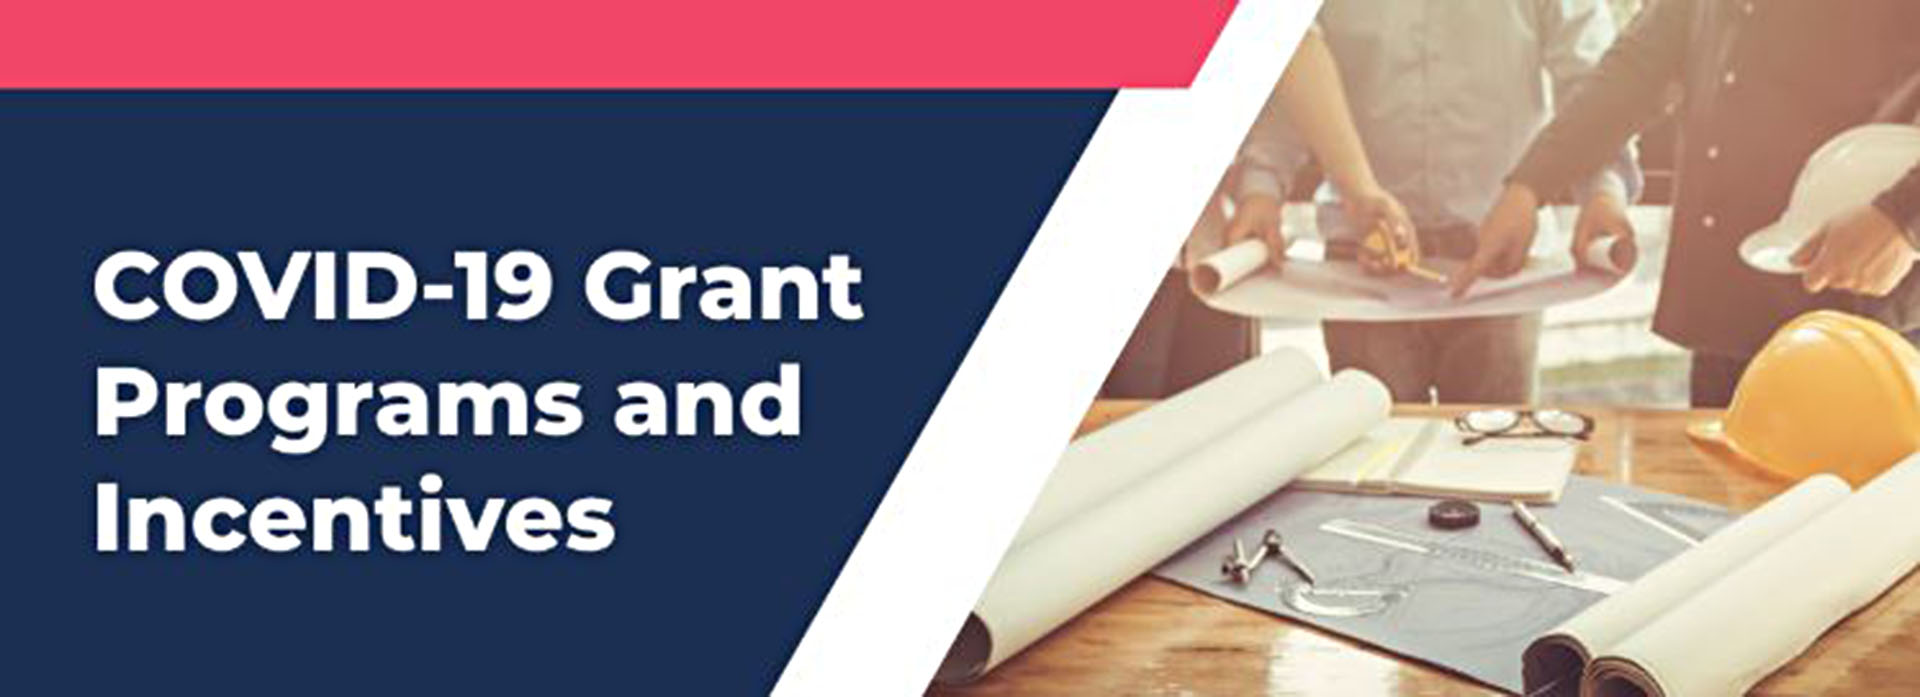 County grant programs to support businesses